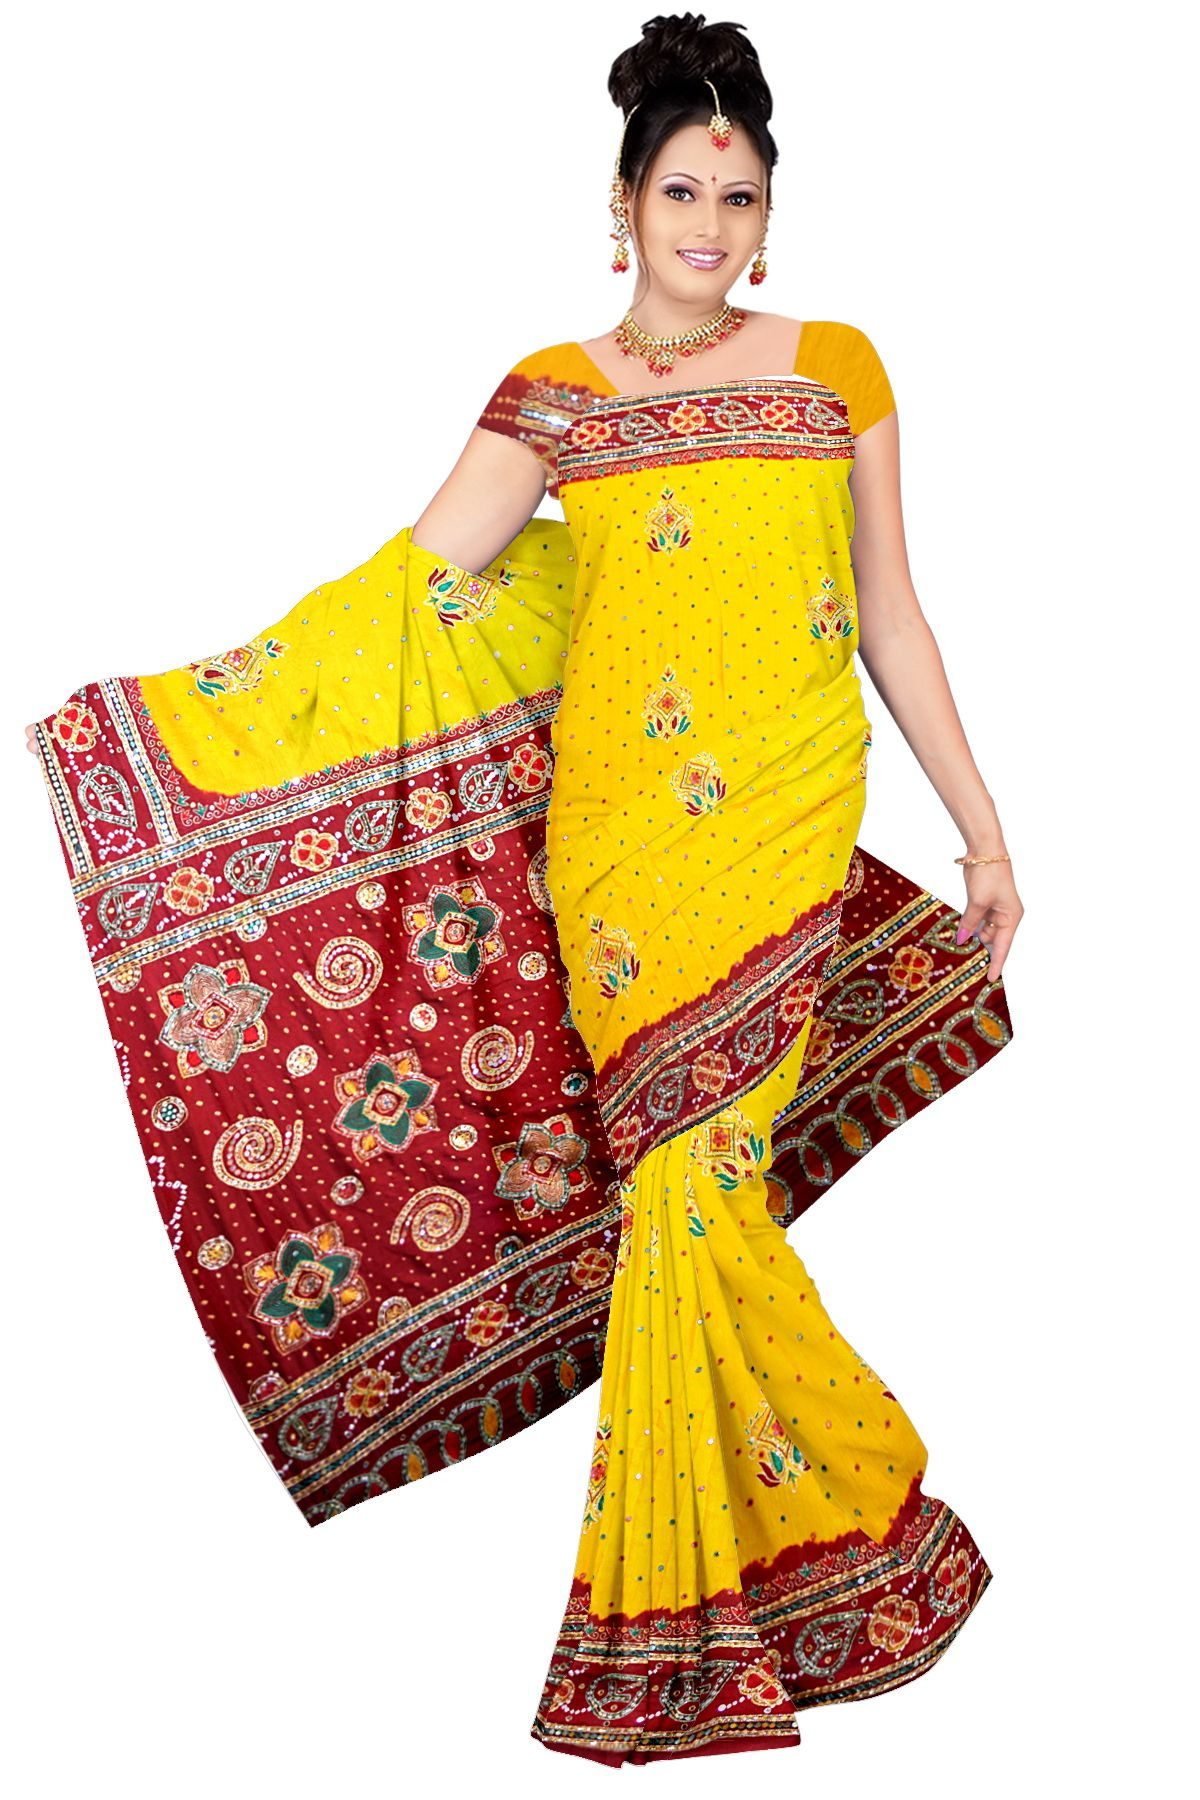 8b36eccc9e6d7 Kala Sanskruti Pure Gaji Silk Yellow And Red Colore Bandhani Saree Material